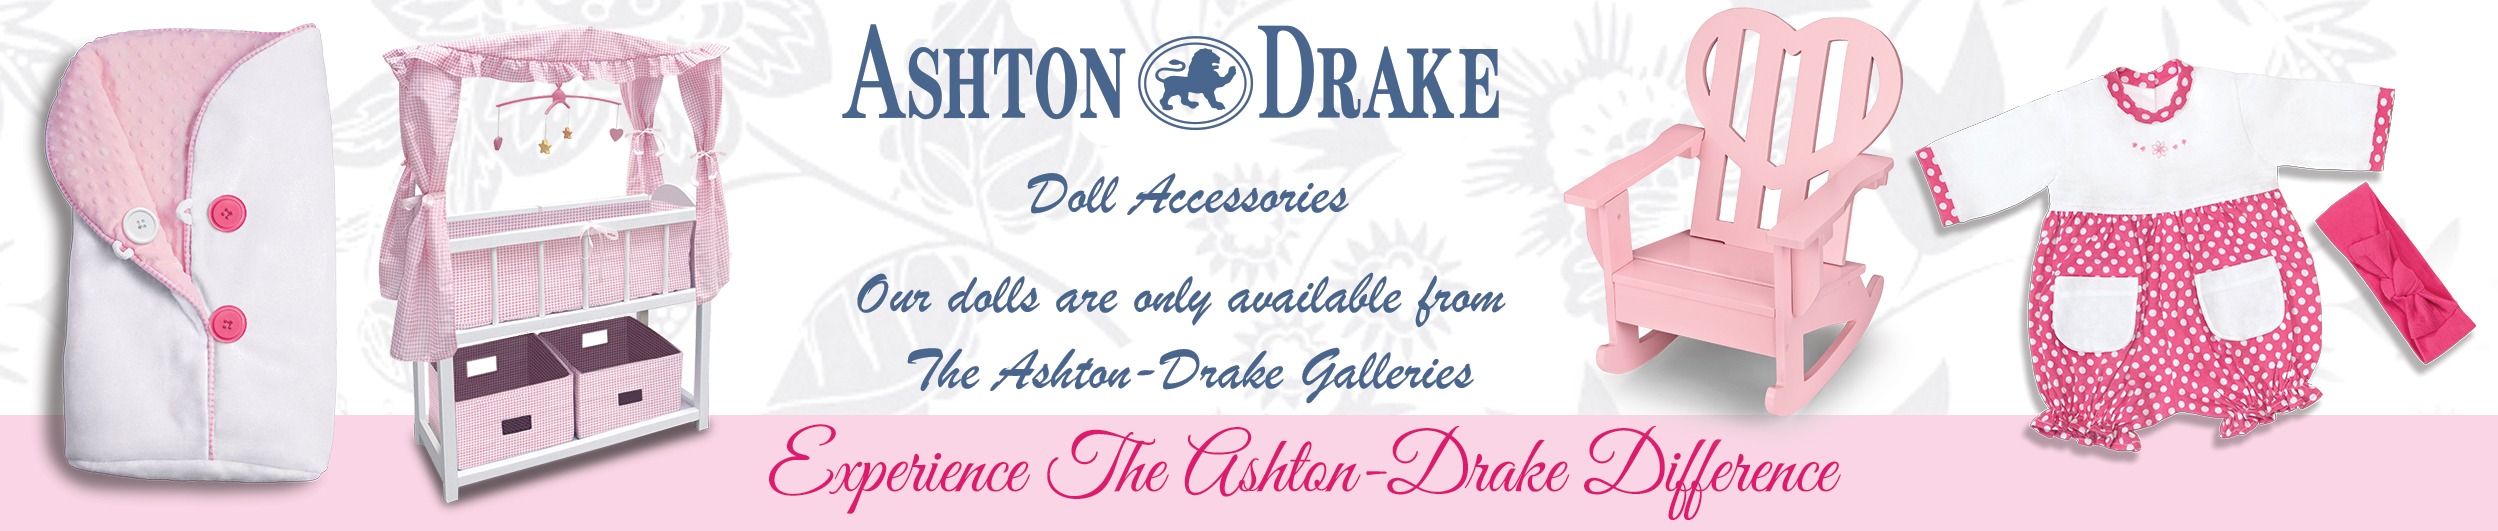 Ashton-Drake Doll Accessories